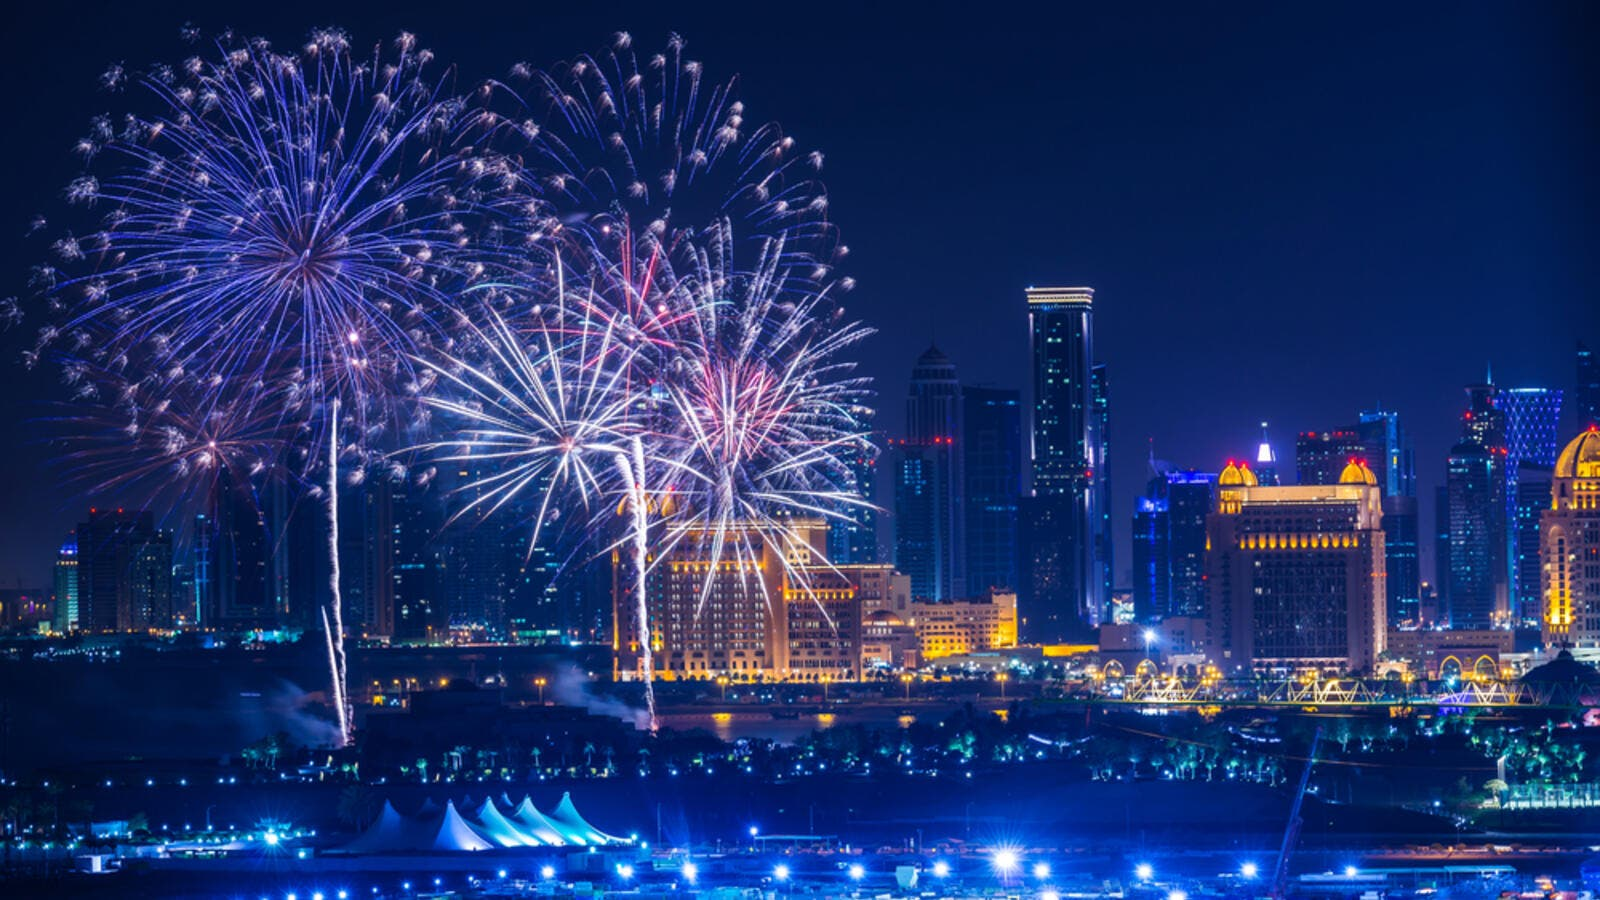 Costing QR6.5 billion, Doha Festival City is set to be among the largest malls in the GCC when it opens in April. (Shutterstock)